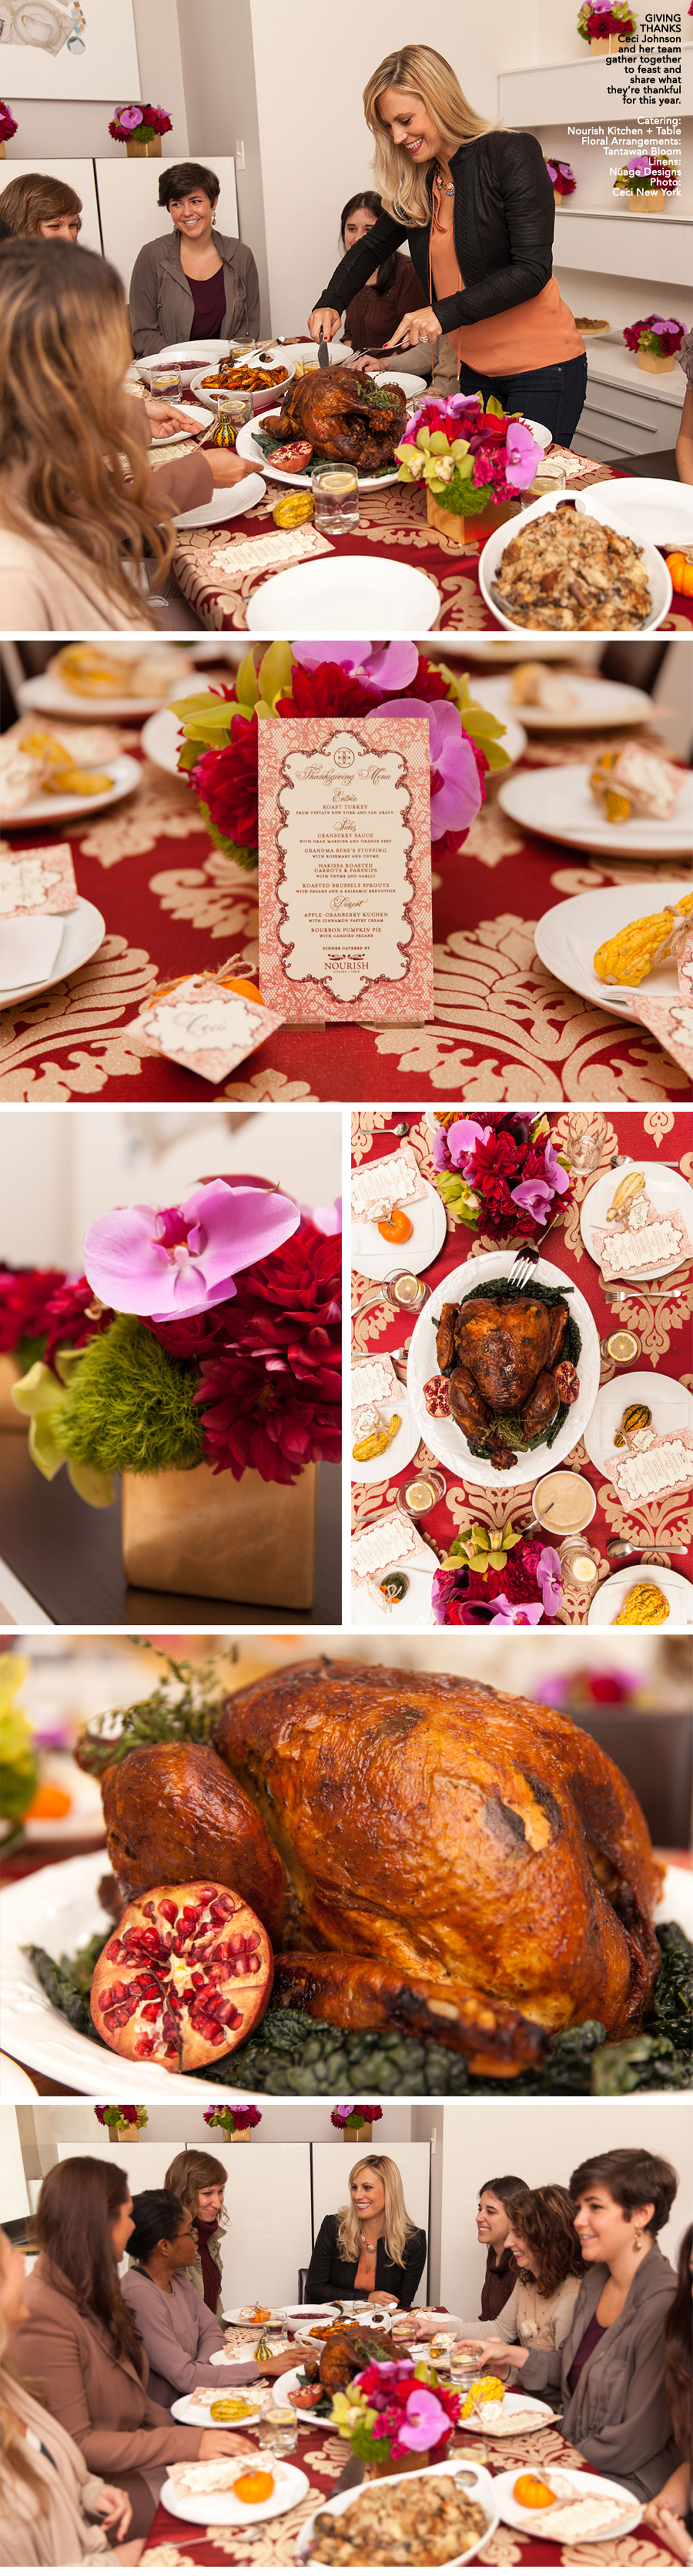 Nourish Kitchen And Table Catering